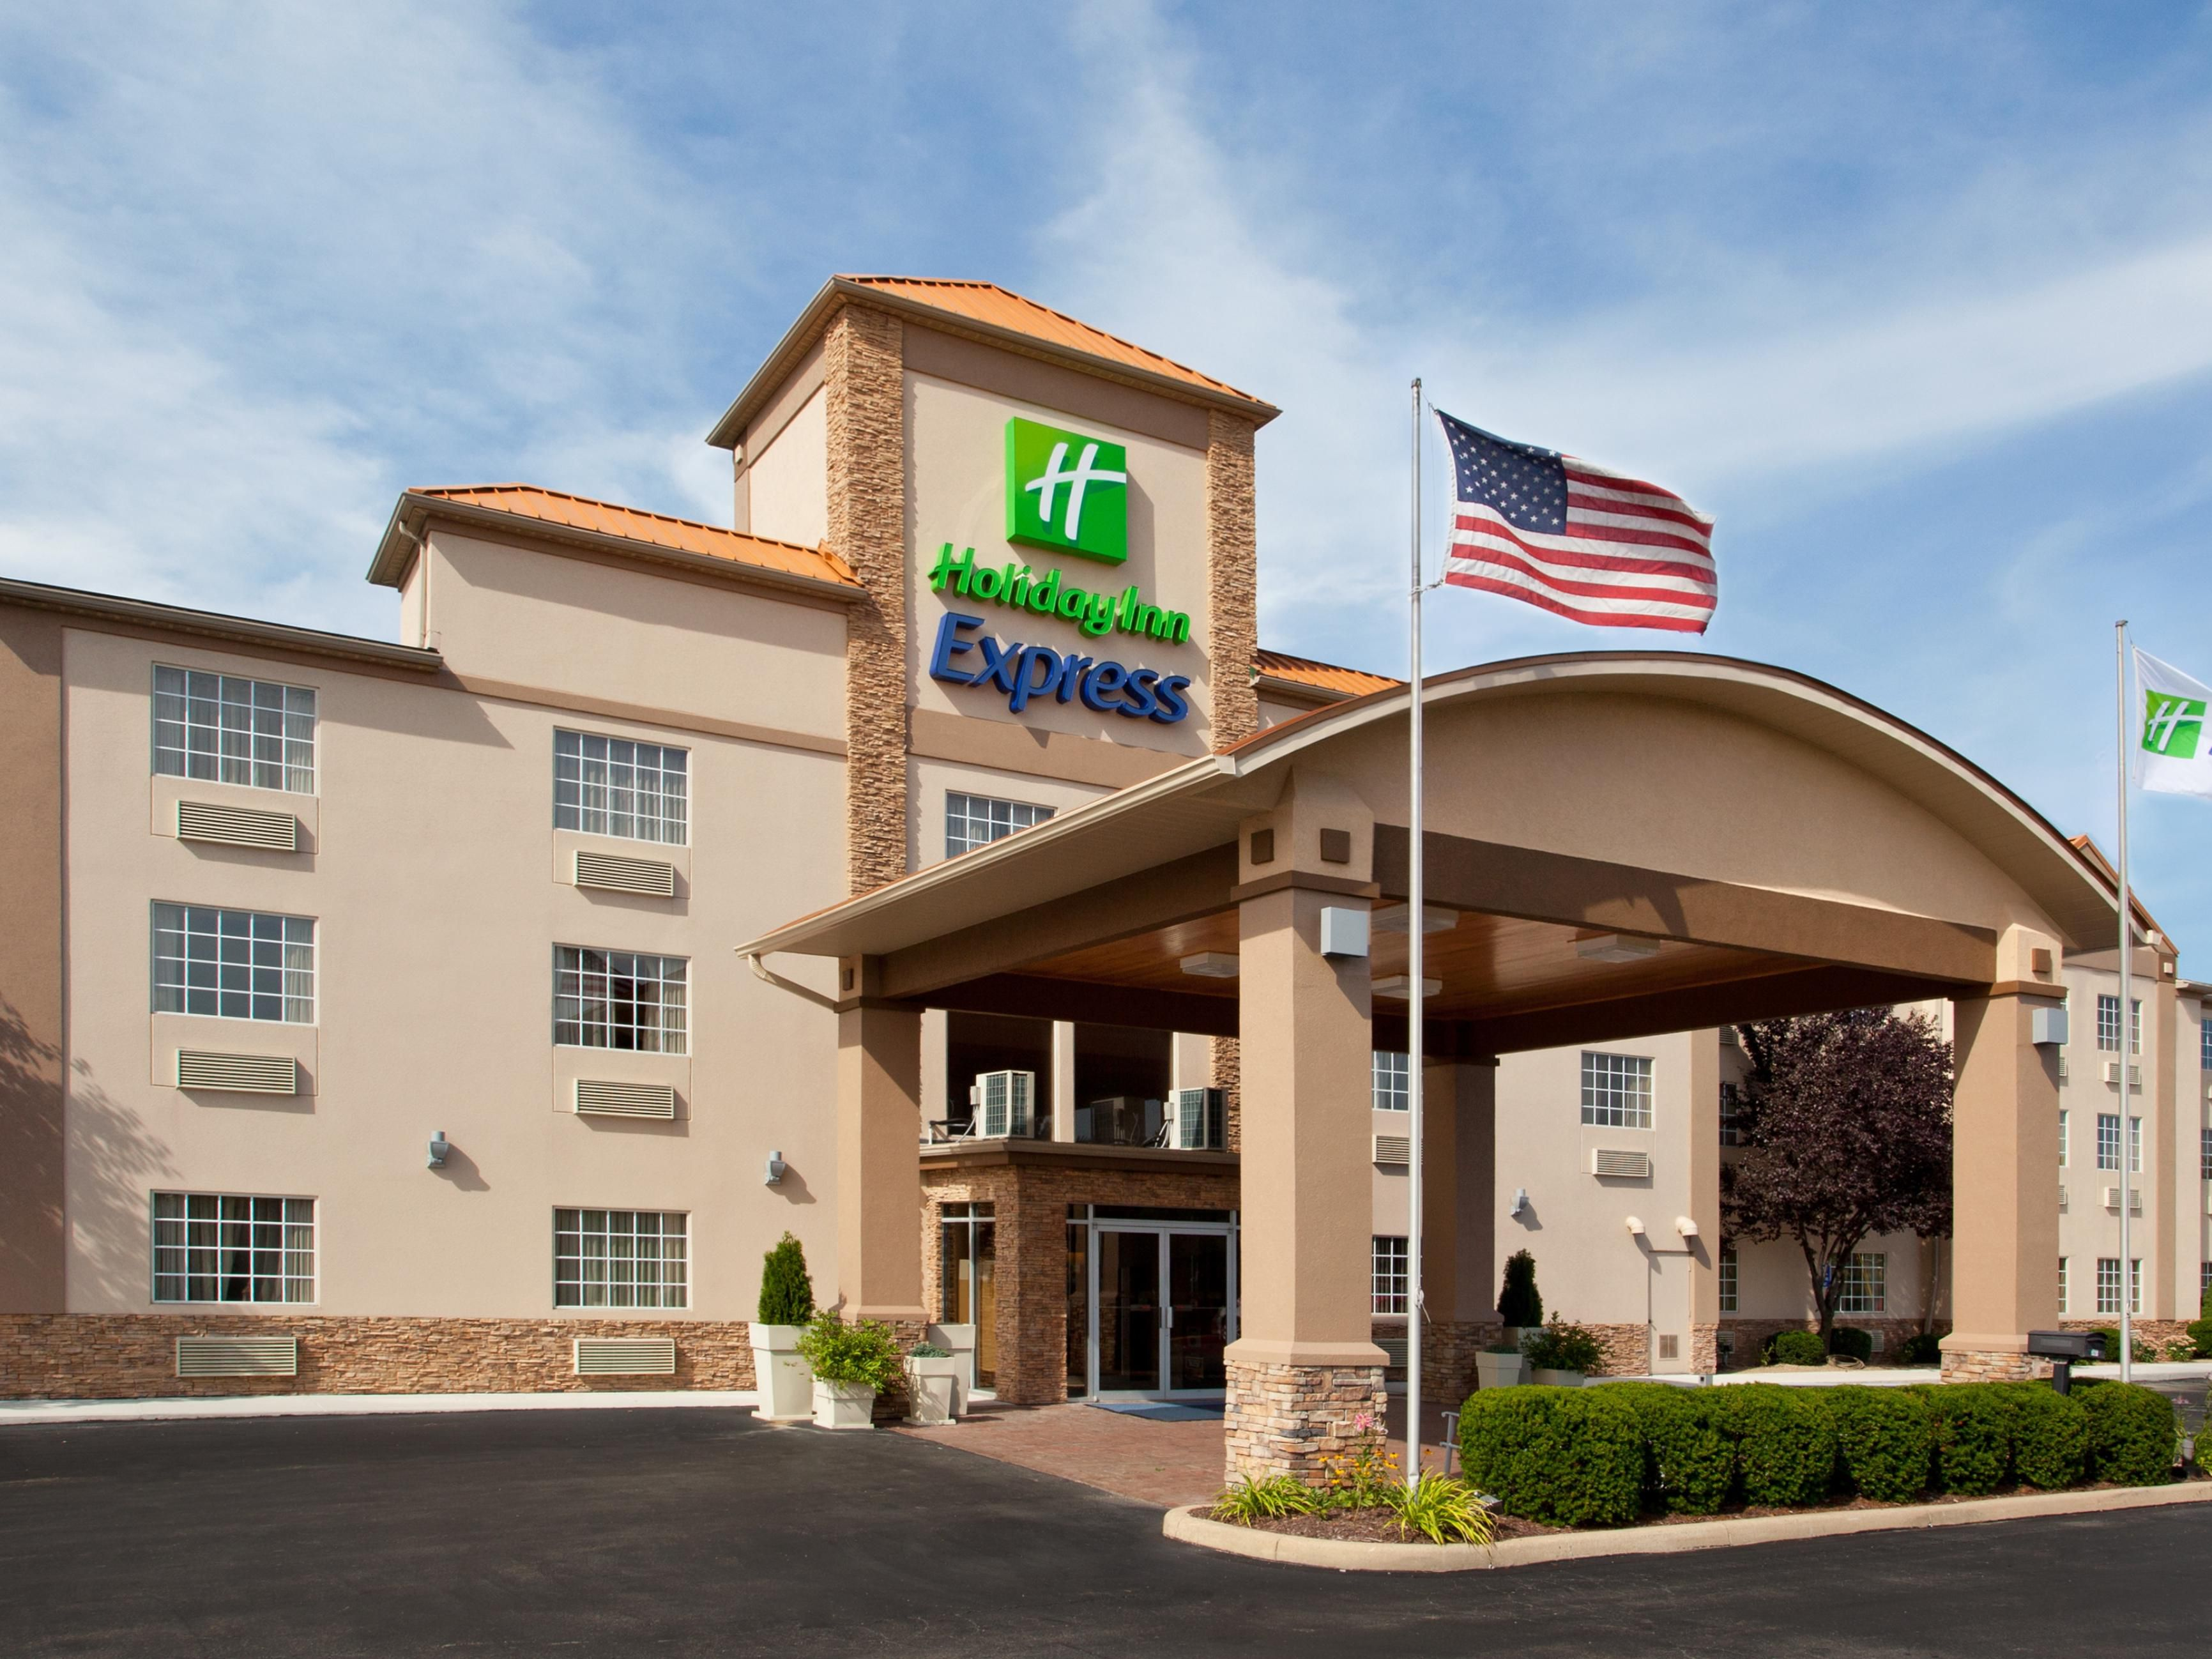 holiday-inn-express-delmont-4250386947-4x3